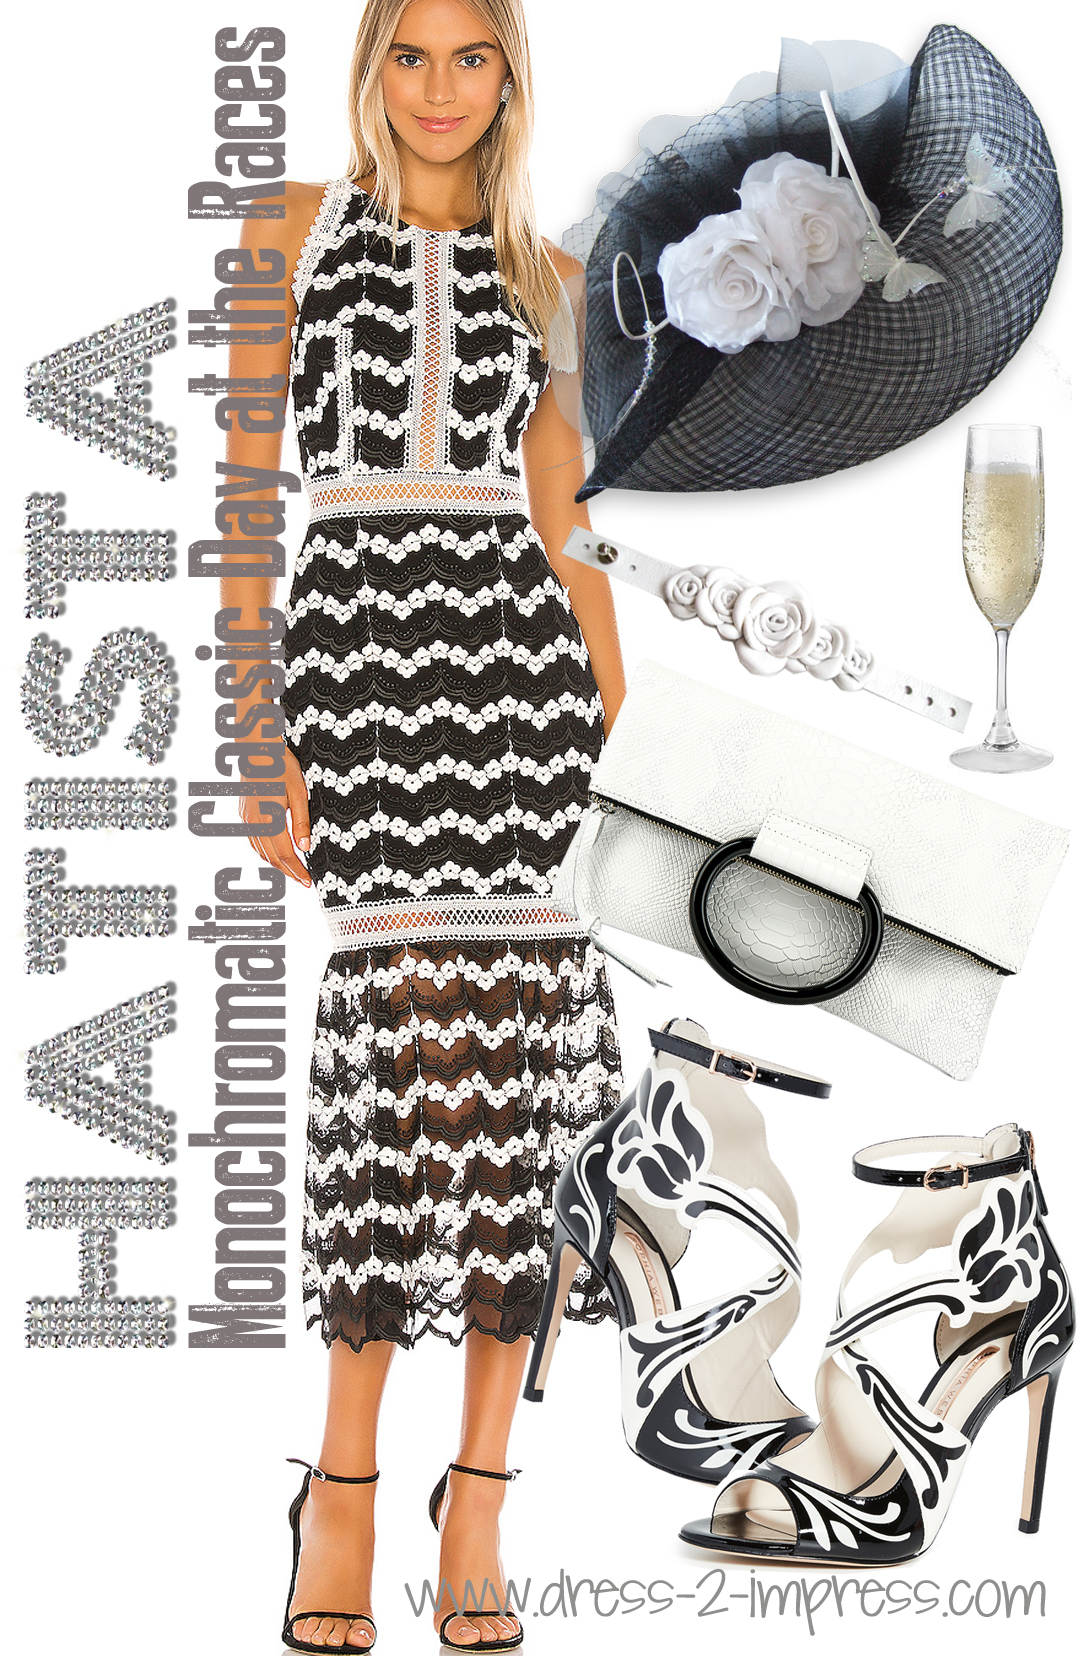 What to wear for Royal Ascot. Monochrome Fashion. What to wear with a White Dress. Outfits for Royal Ascot. What to wear to Ascot Champions Day. Black and White Outfits. What to wear to the Races. Royal Ascot Outfit Inspiration #racingfashion #royalascot #outfitinspiration #royalascotoutfits #racingfashion